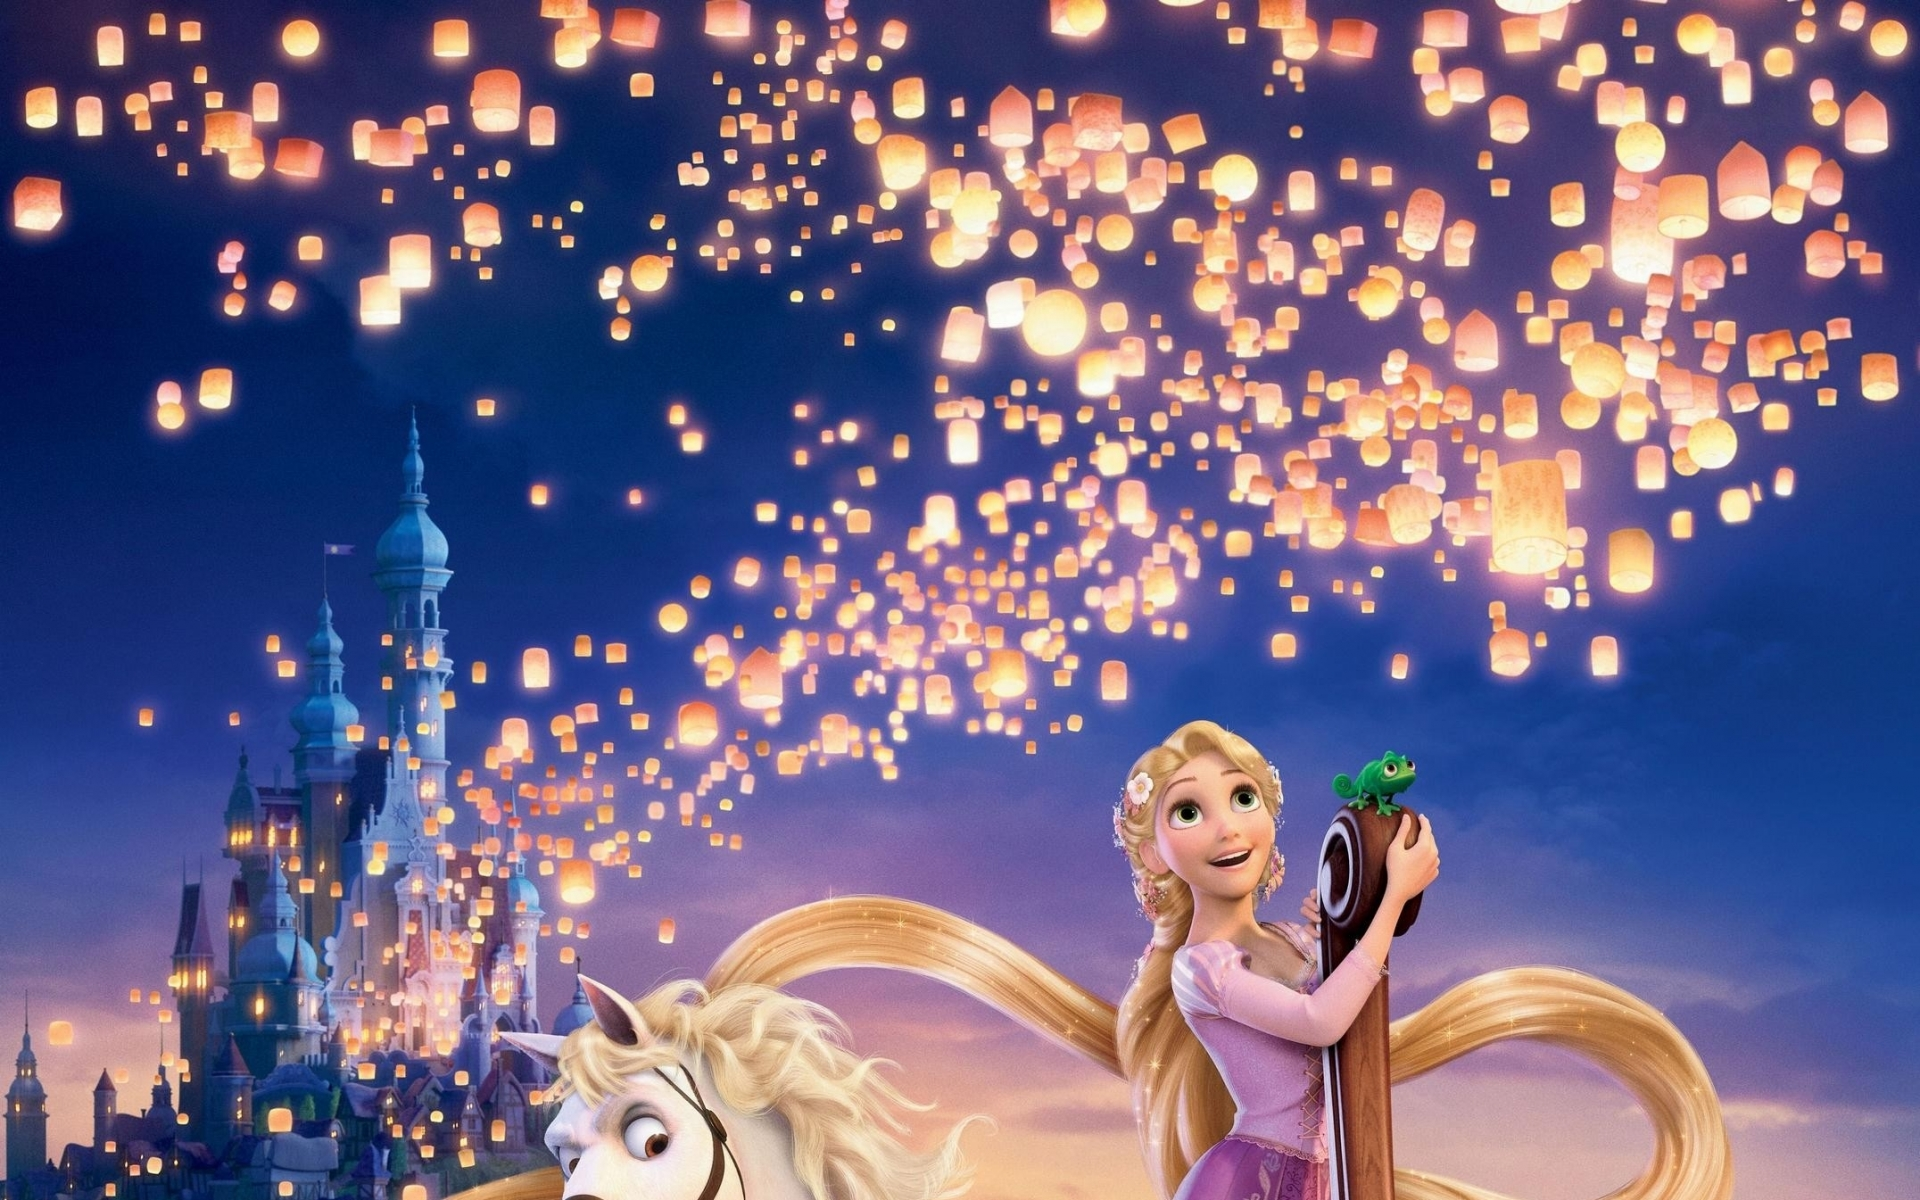 Tangled Wallpapers Disney Laptop Wallpapers Hd 1920x1200 Download Hd Wallpaper Wallpapertip